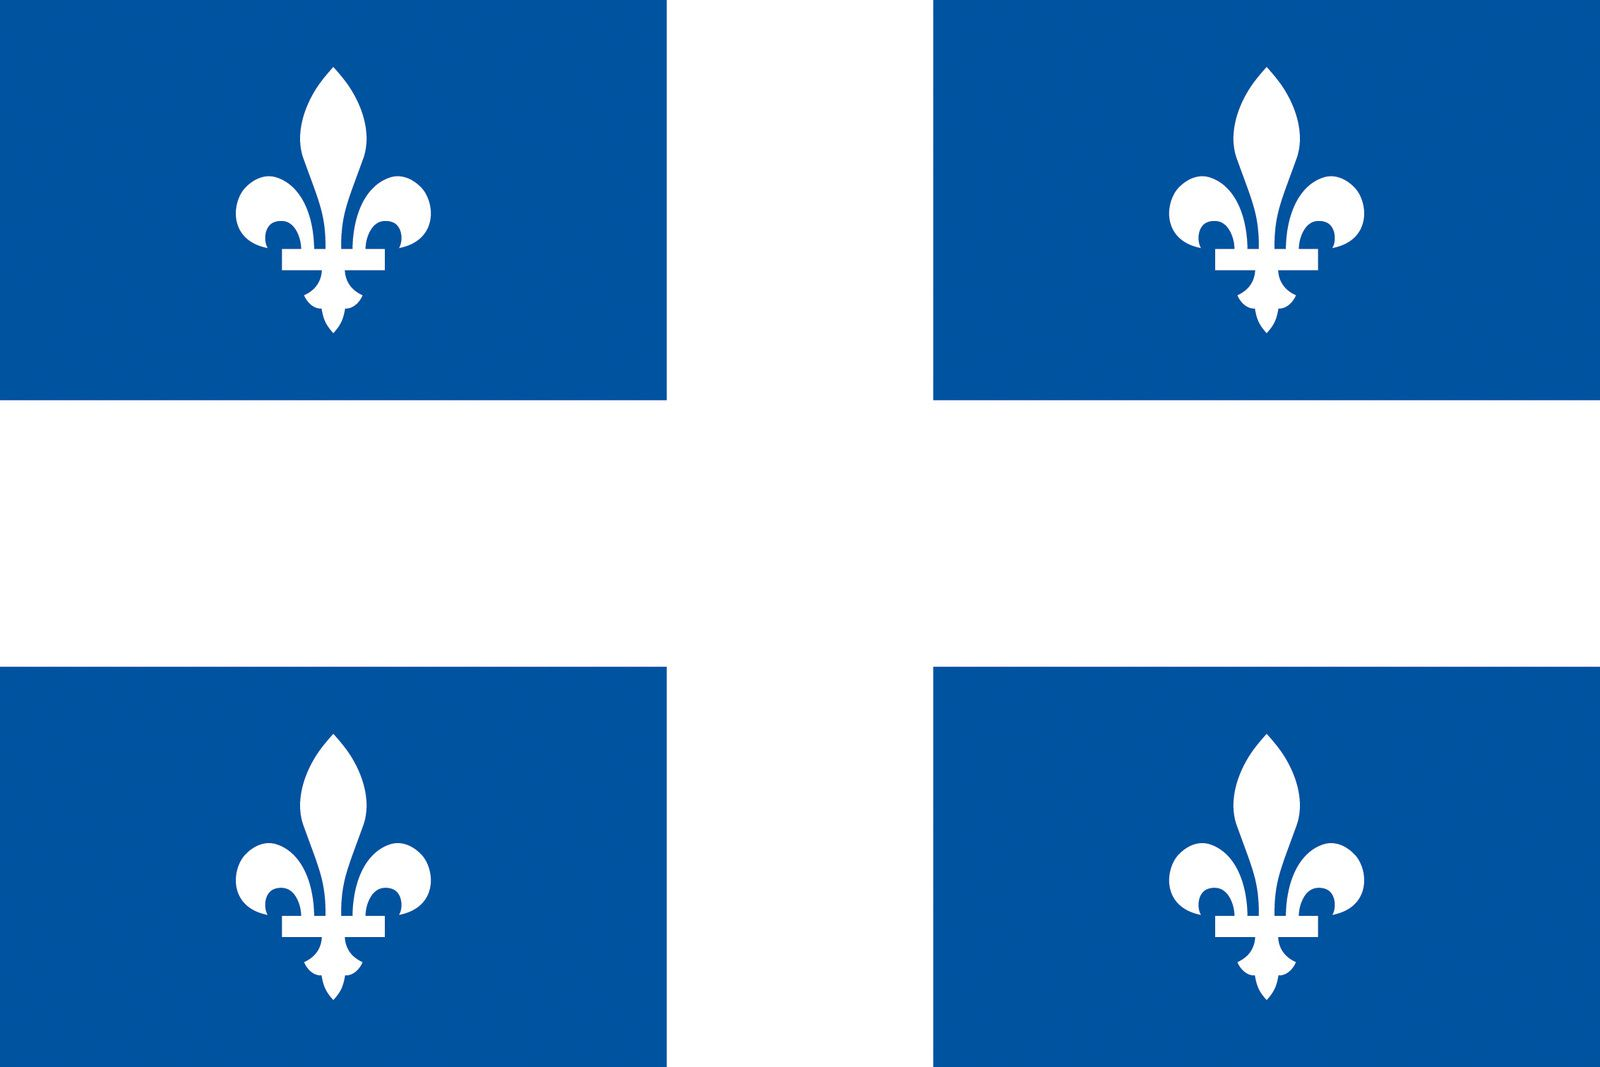 Watch furthermore Watch additionally Forum Hello Quebec Bonjour Quebec together with Watch likewise Watch. on french car ads